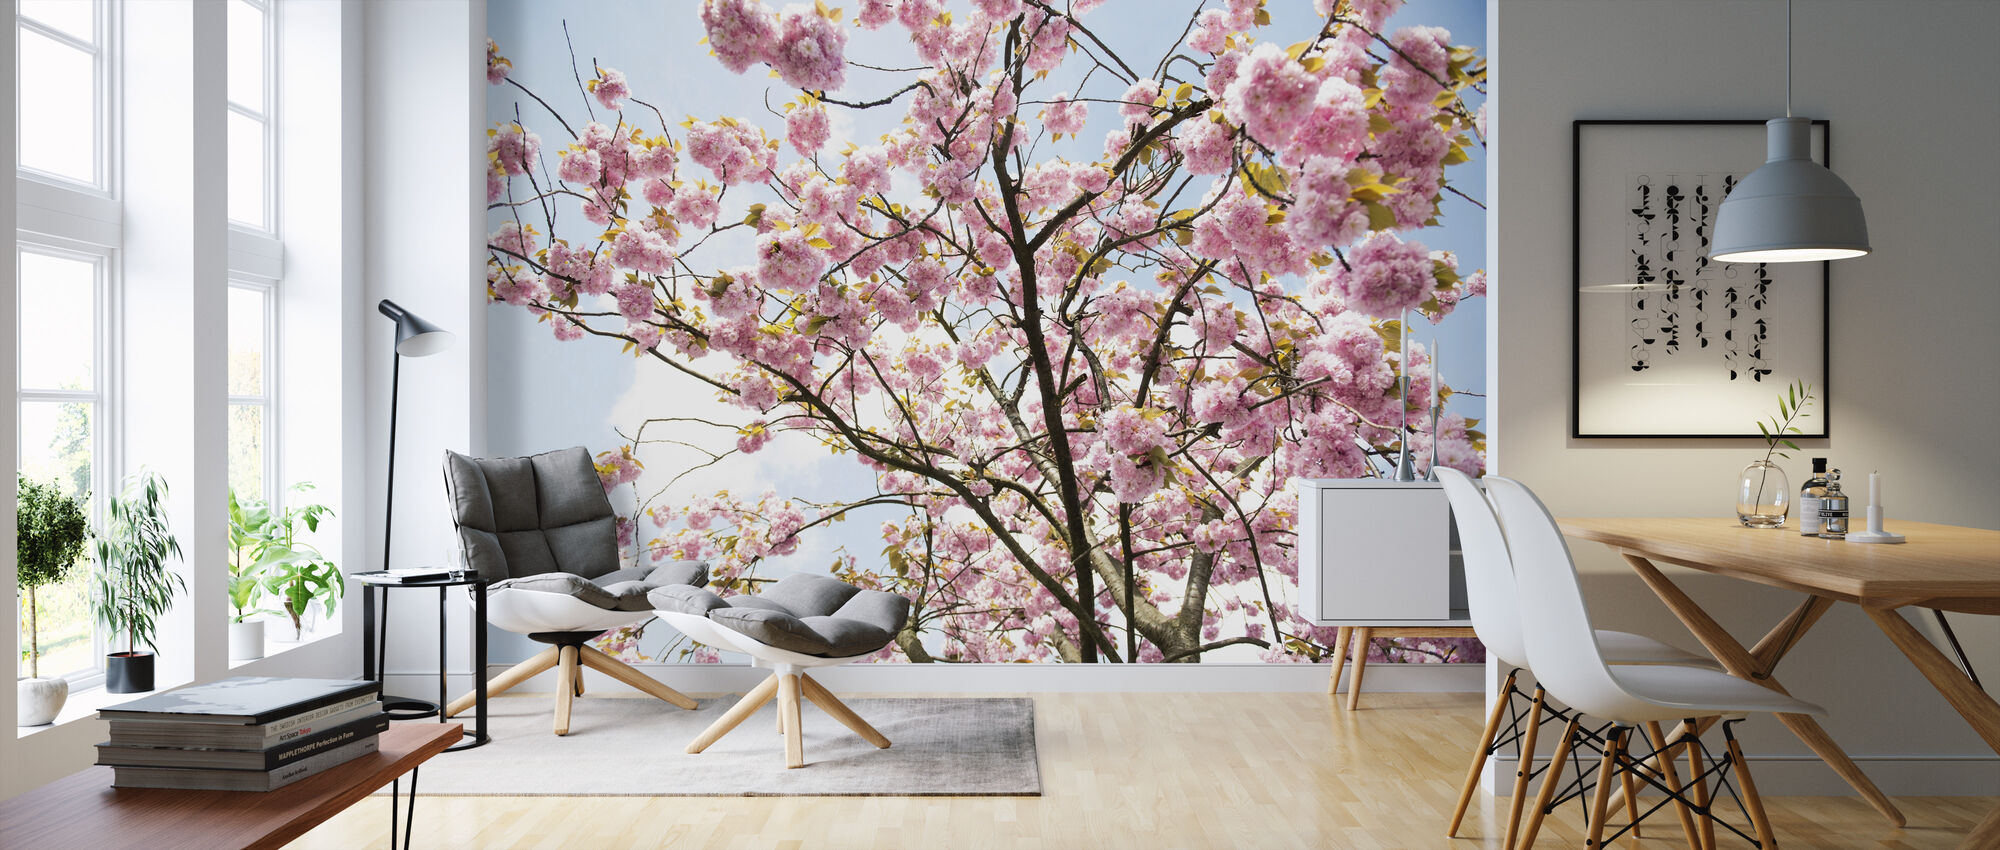 Cherry Blossoms - Wallpaper - Living Room